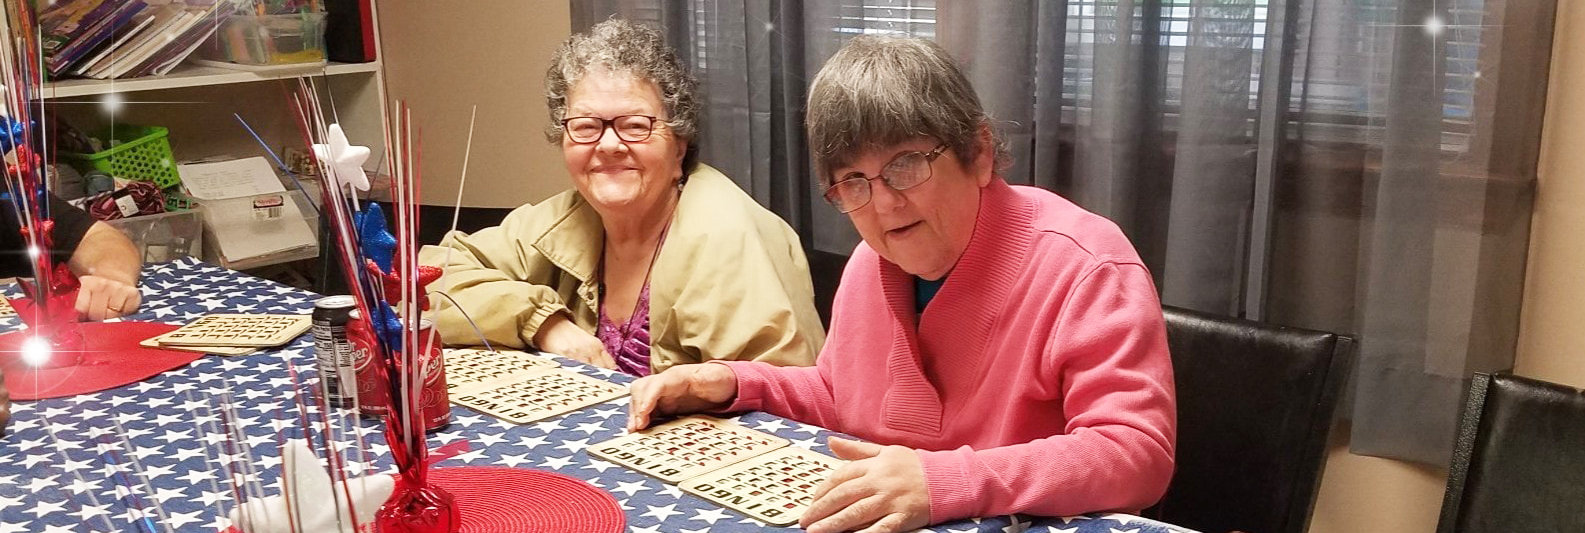 Two residents playing bingo together at Pinebrook